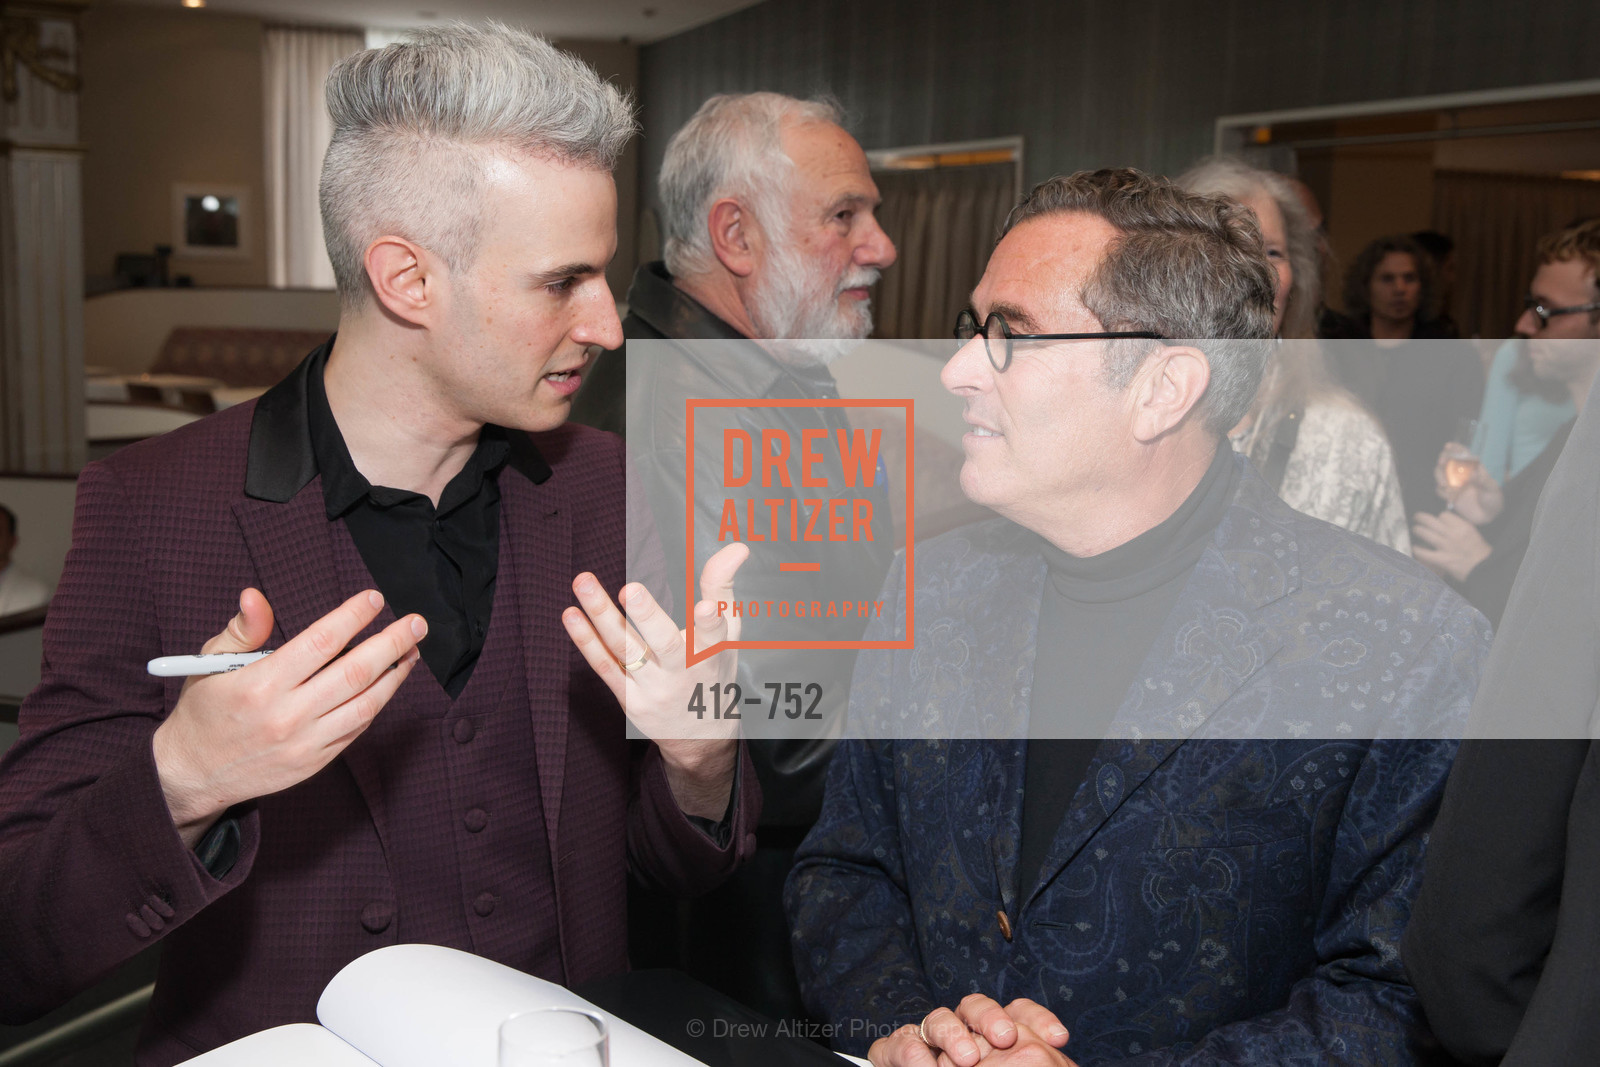 Frederic Aranda, Ricky Serbin, Electric Fashion Book Signing with Christine Suppes & Ken Downing at THE ROTUNDA, NEIMAN MARCUS, Neiman Marcus, Rotunda, May 27th, 2015,Drew Altizer, Drew Altizer Photography, full-service agency, private events, San Francisco photographer, photographer california